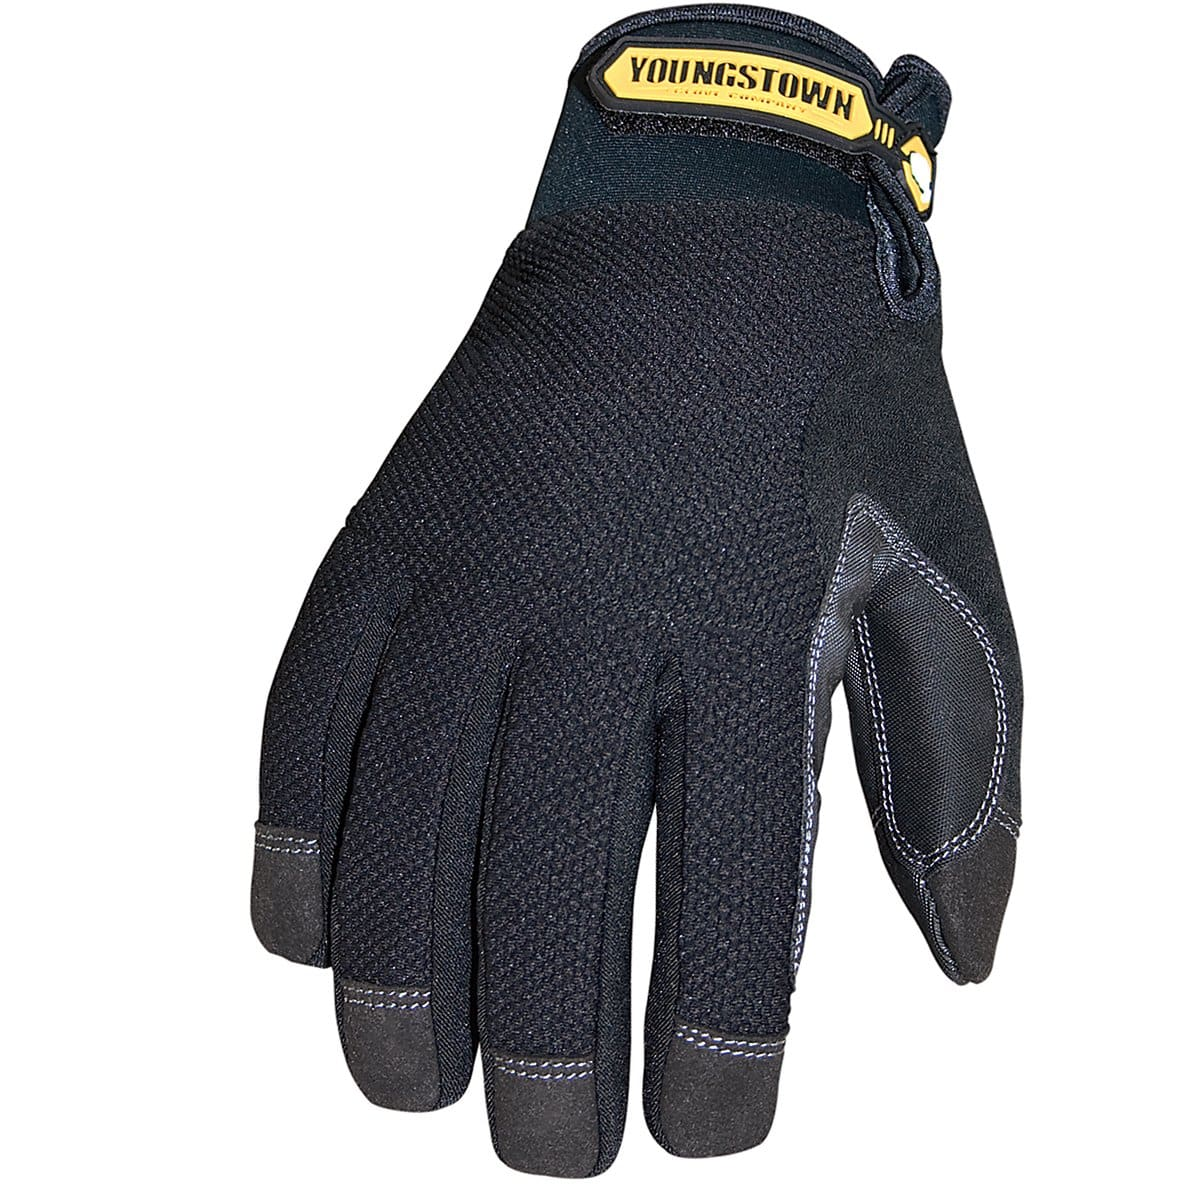 Youngstown Glove 03-3450-80L Waterproof Winter Plus Performance Glove